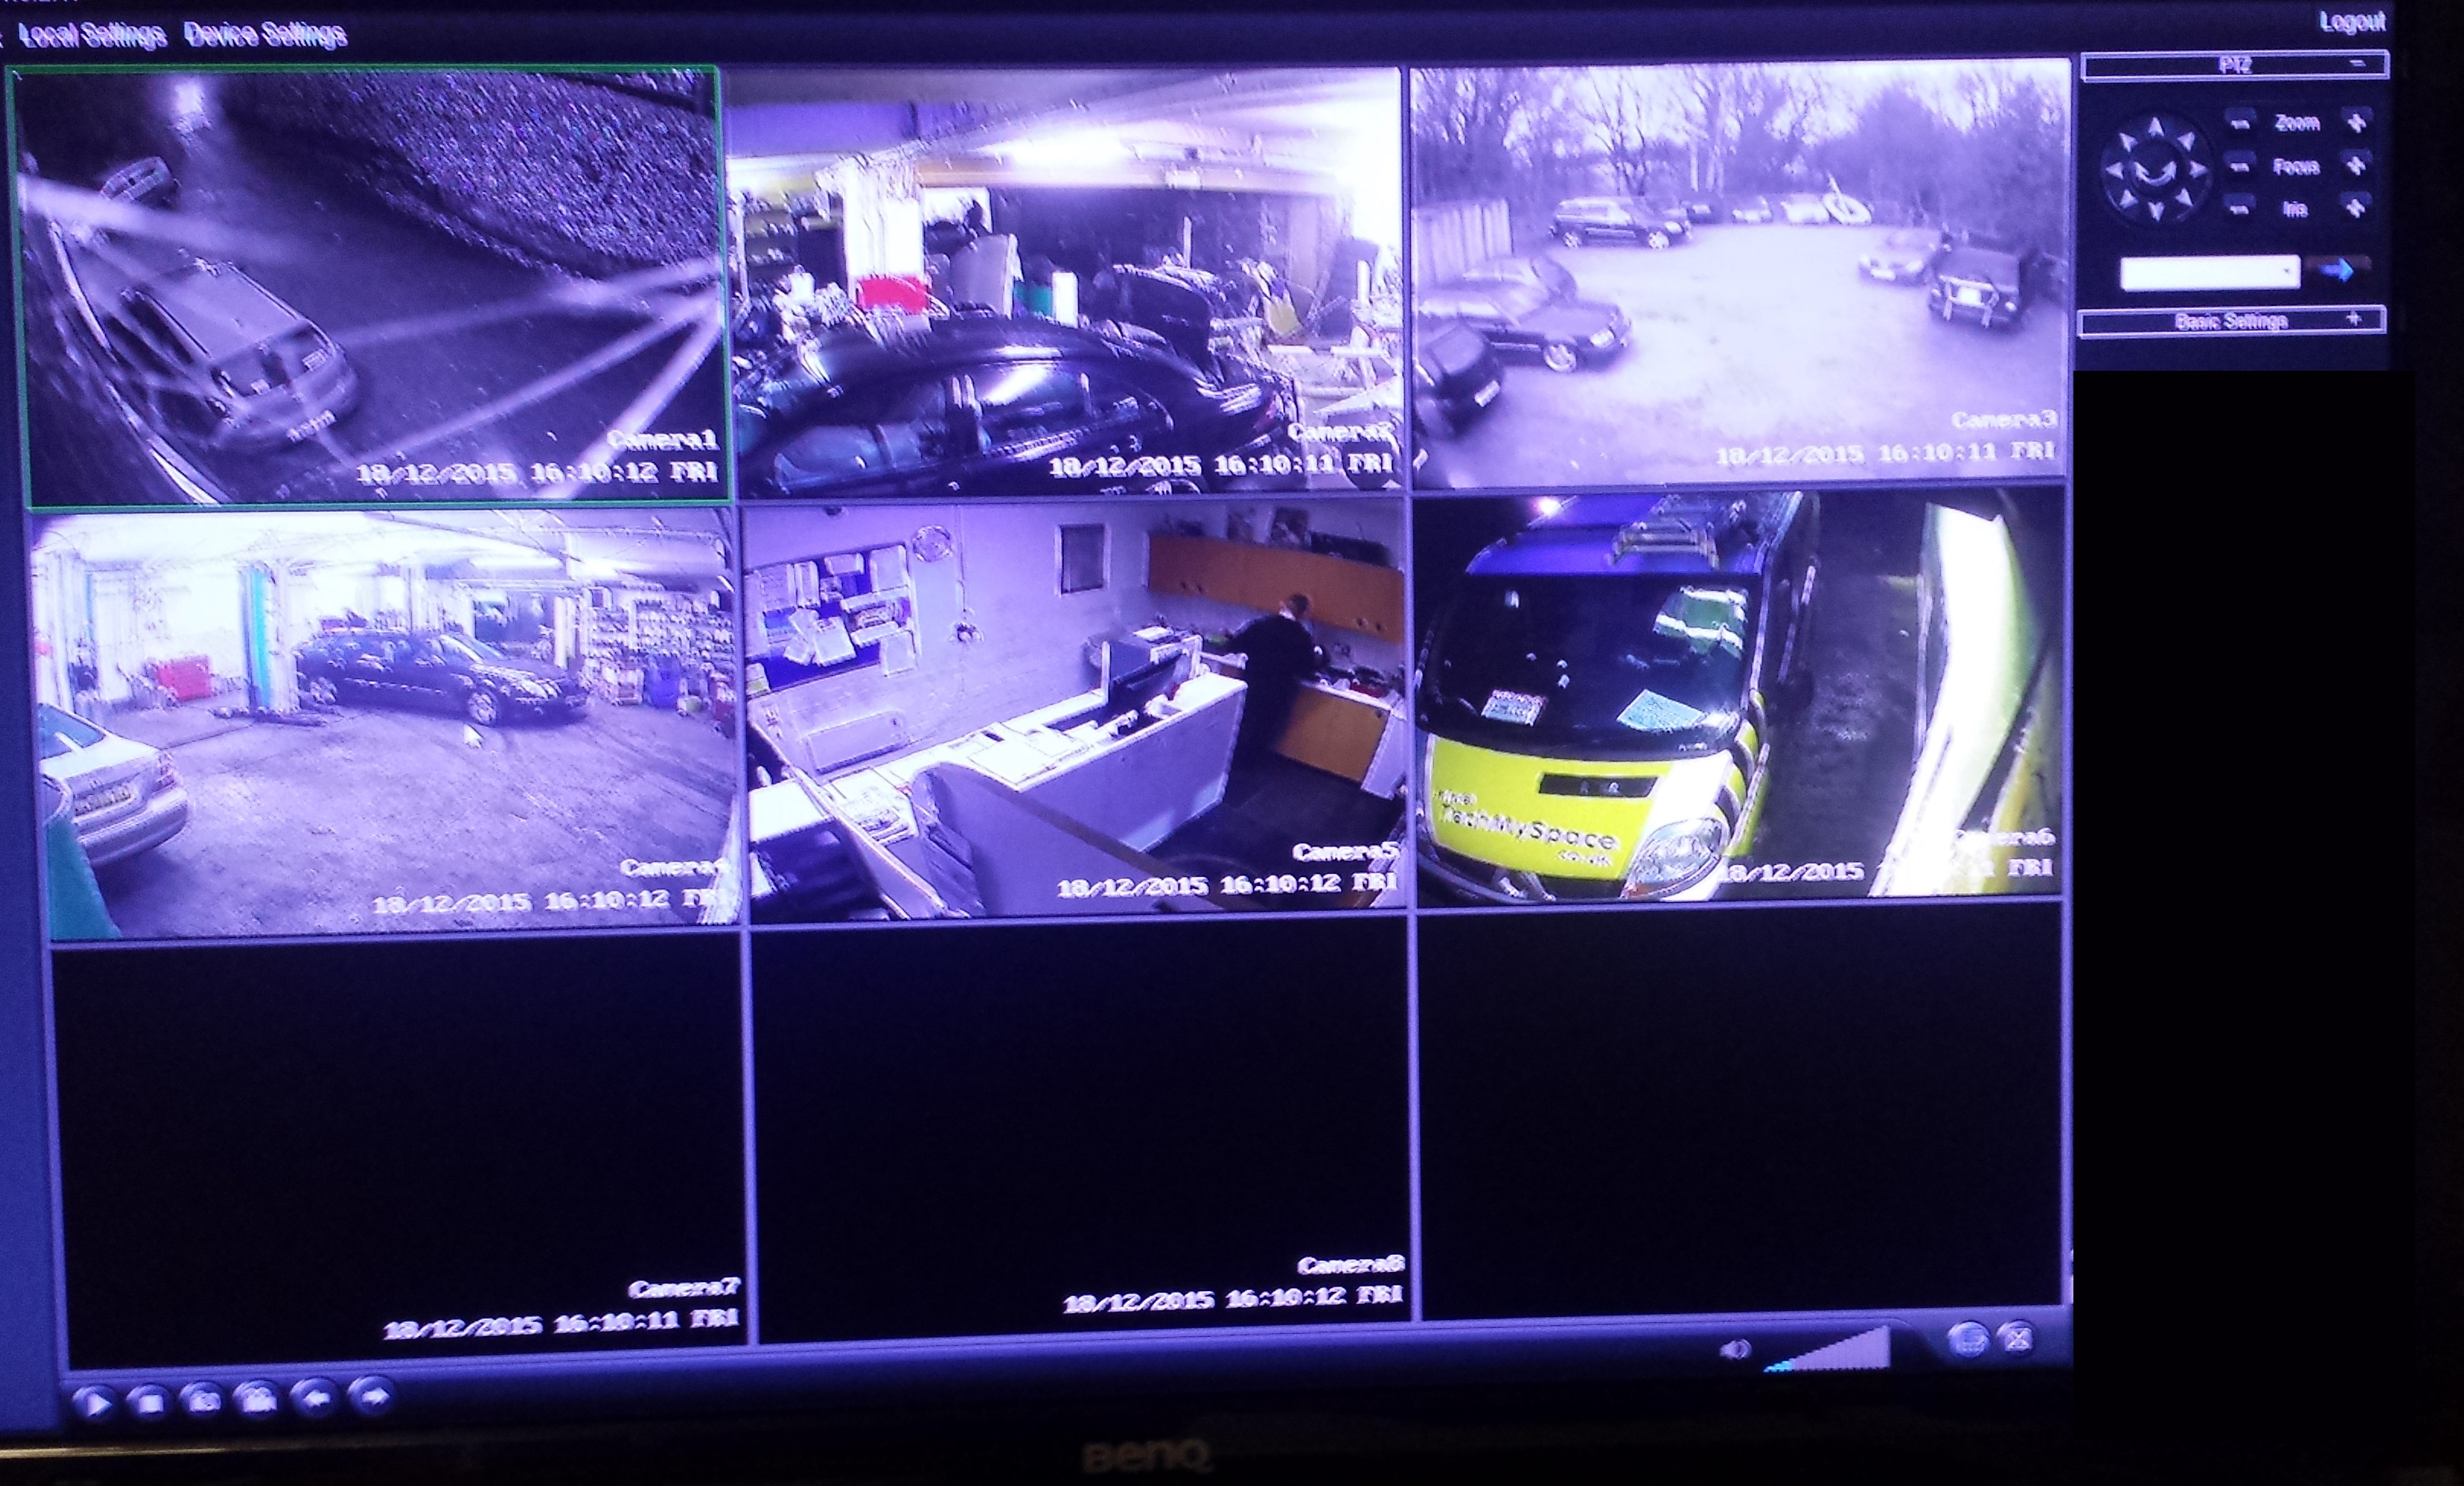 CCTV Onsite Multi View